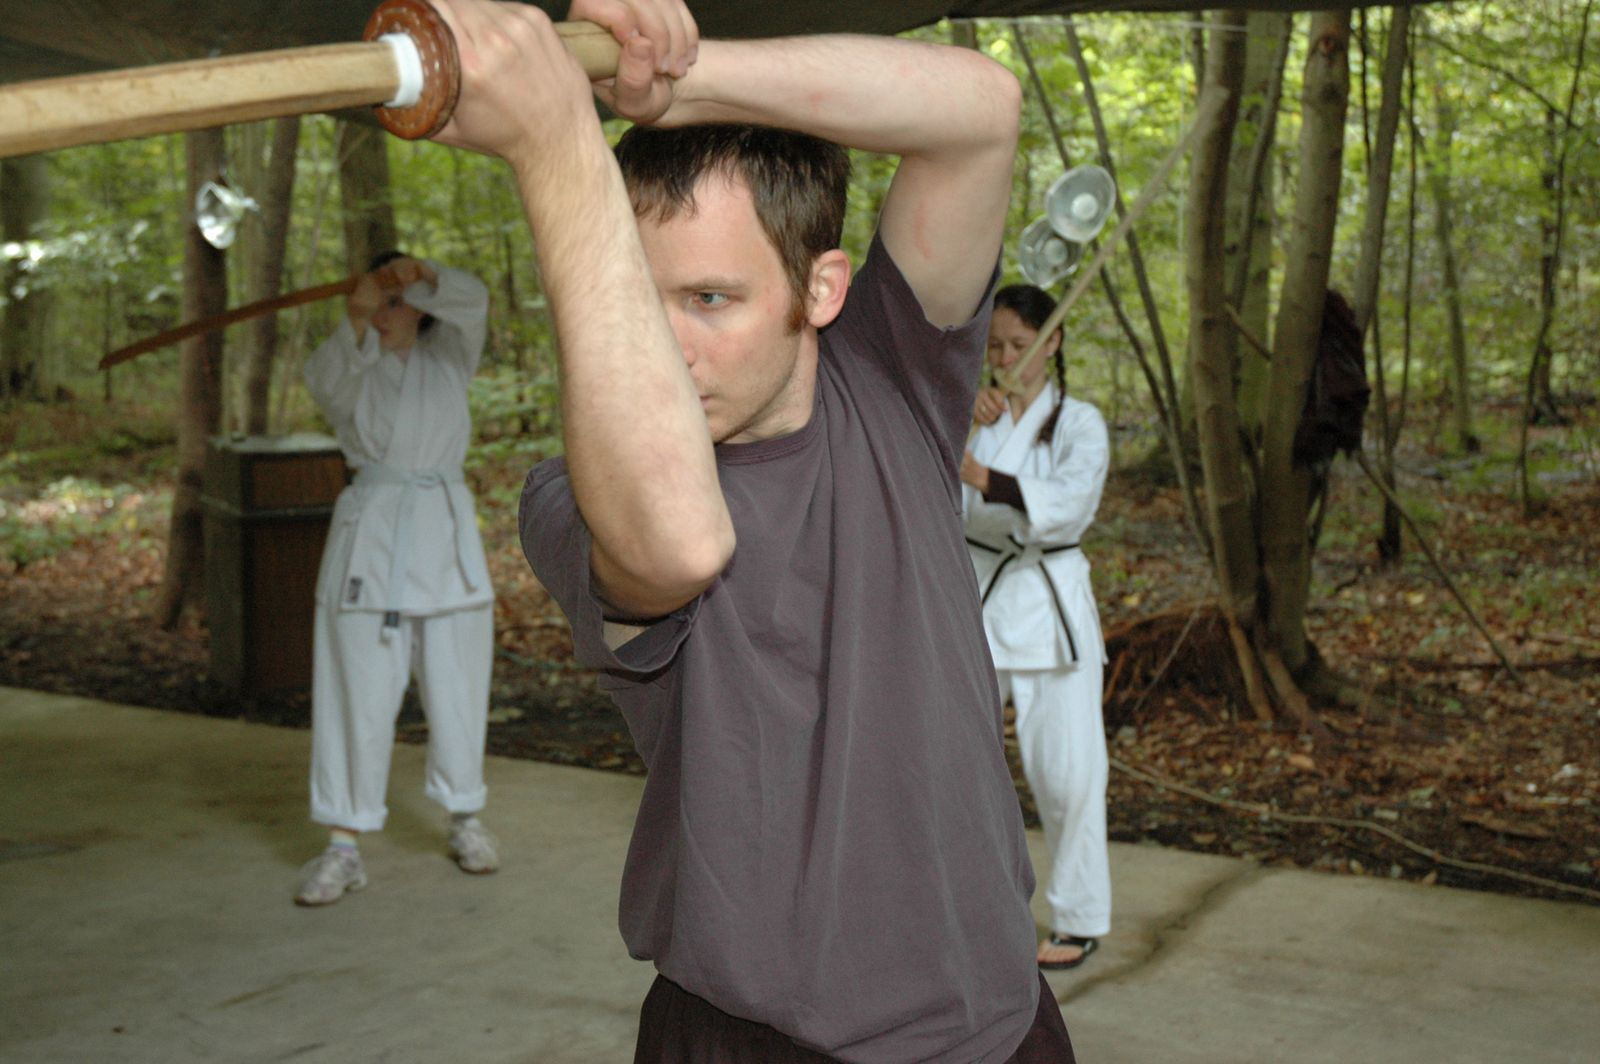 Aikido and Outdoor Survival Sept 2010 - Bokken Work